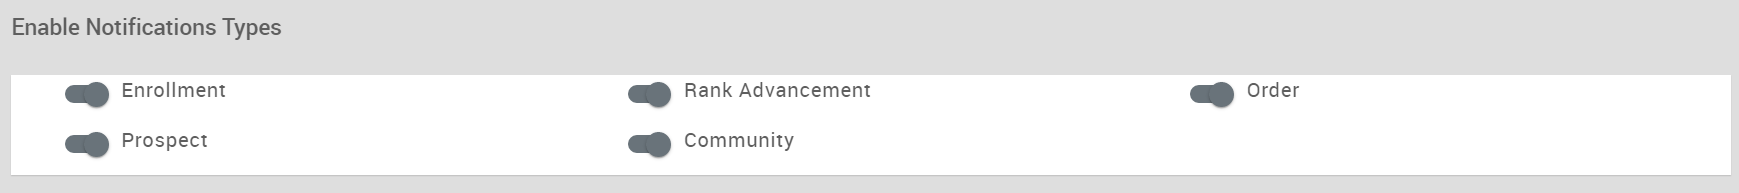 Enable Notifications Types section